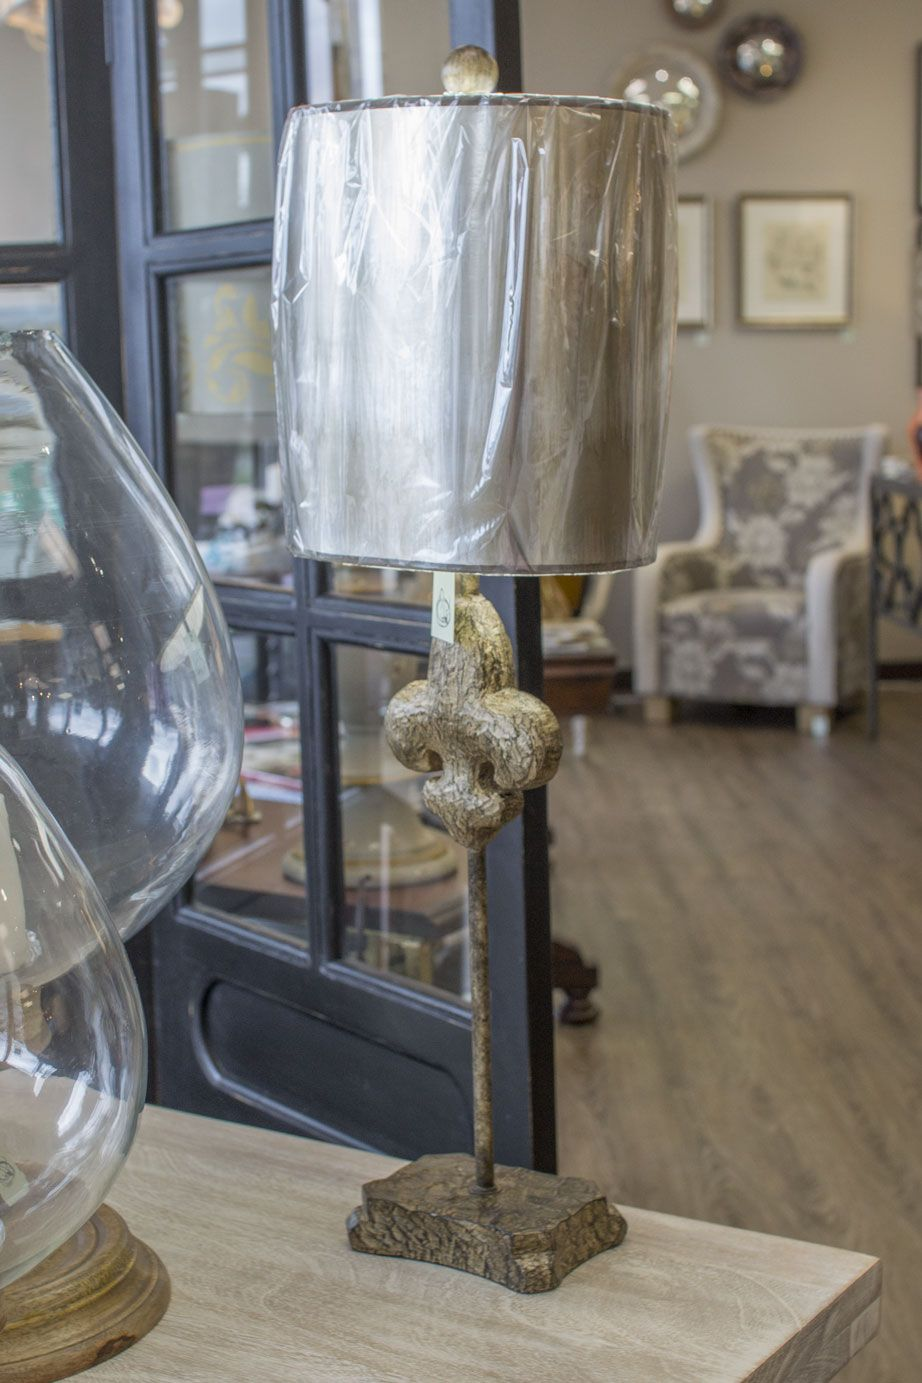 Small Fluer de lis lamp with metallic accents. Robin's